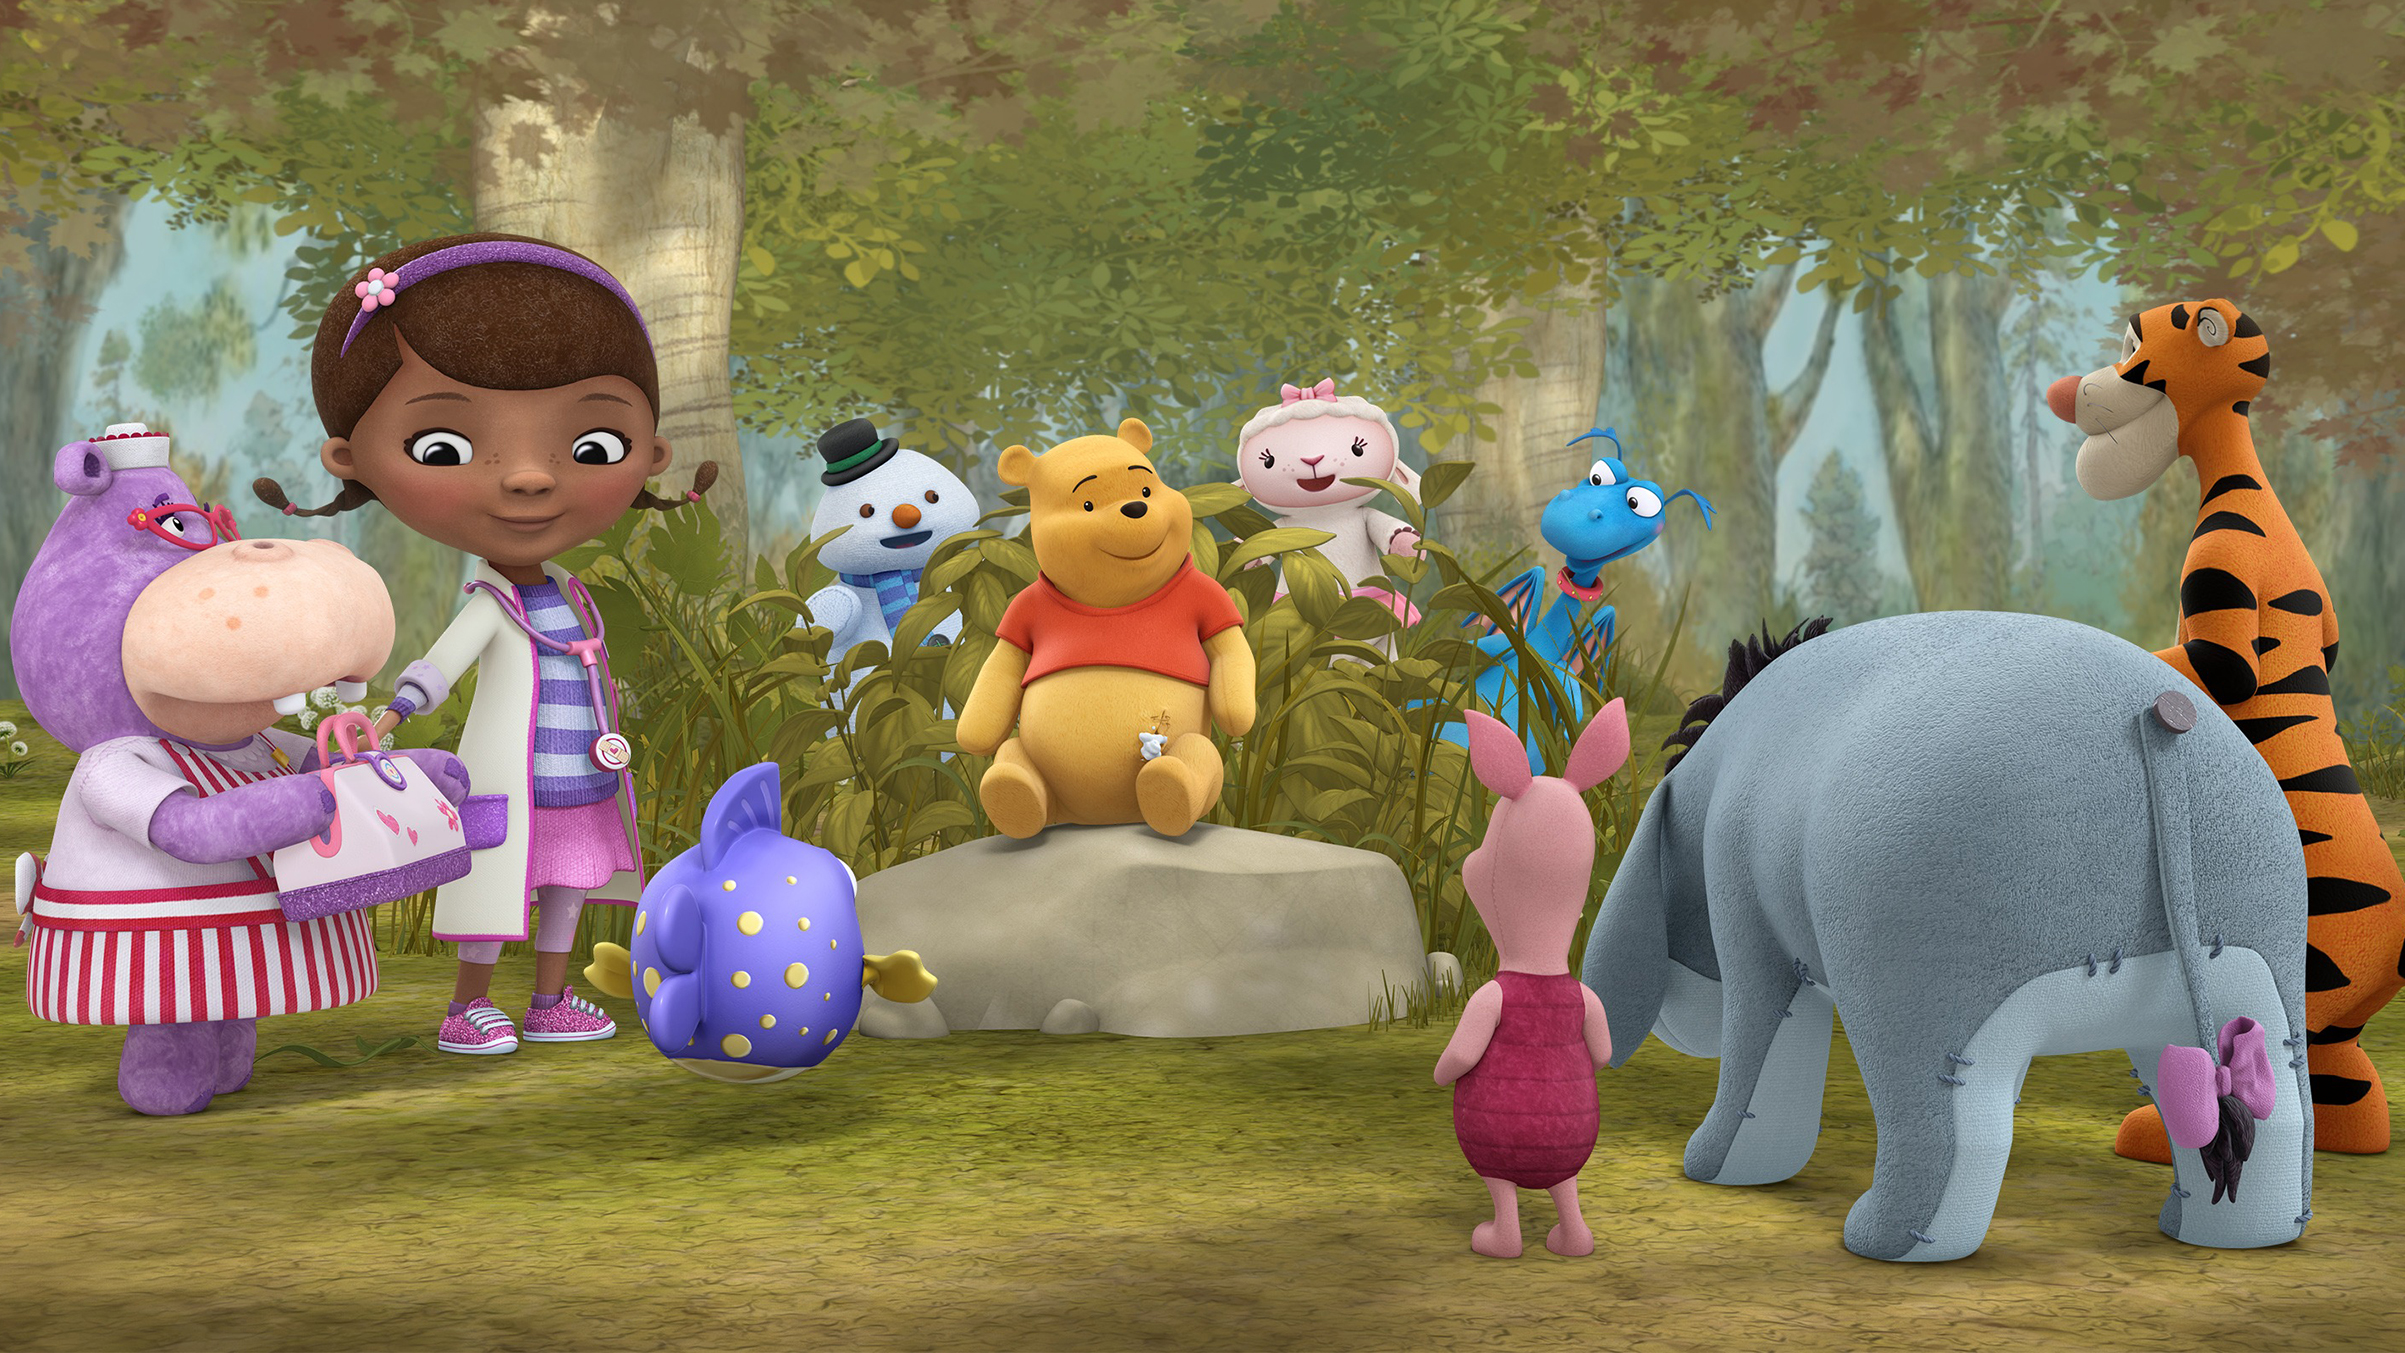 Doc ventures  Into the Hundred Acre Wood!  with her toys and welcomes Winnie the Pooh and friends to McStuffinsville in Disney Junior's  Doc McStuffins  on January 18, 2017.